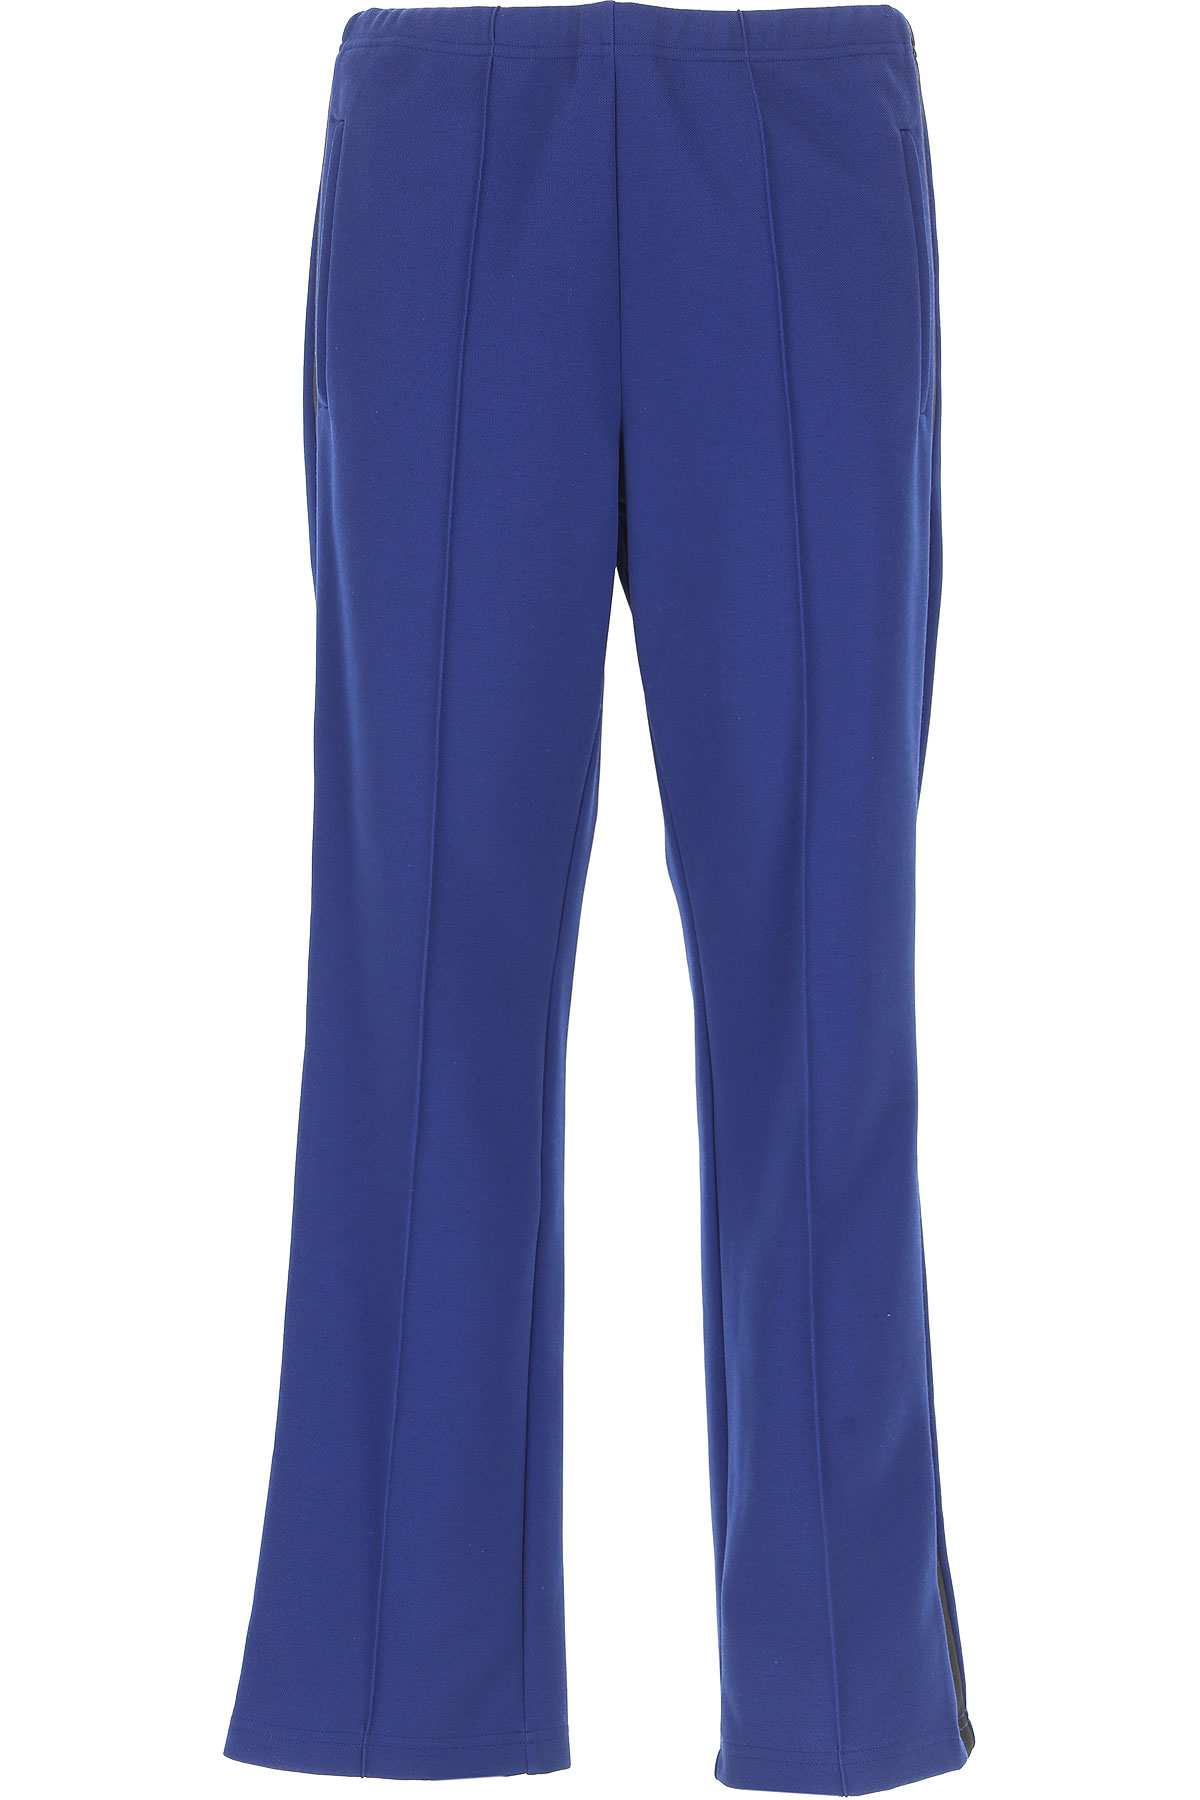 Maison Martin Margiela Pants for Men On Sale in Outlet, Electric Blue, polyester, 2019, 32 34